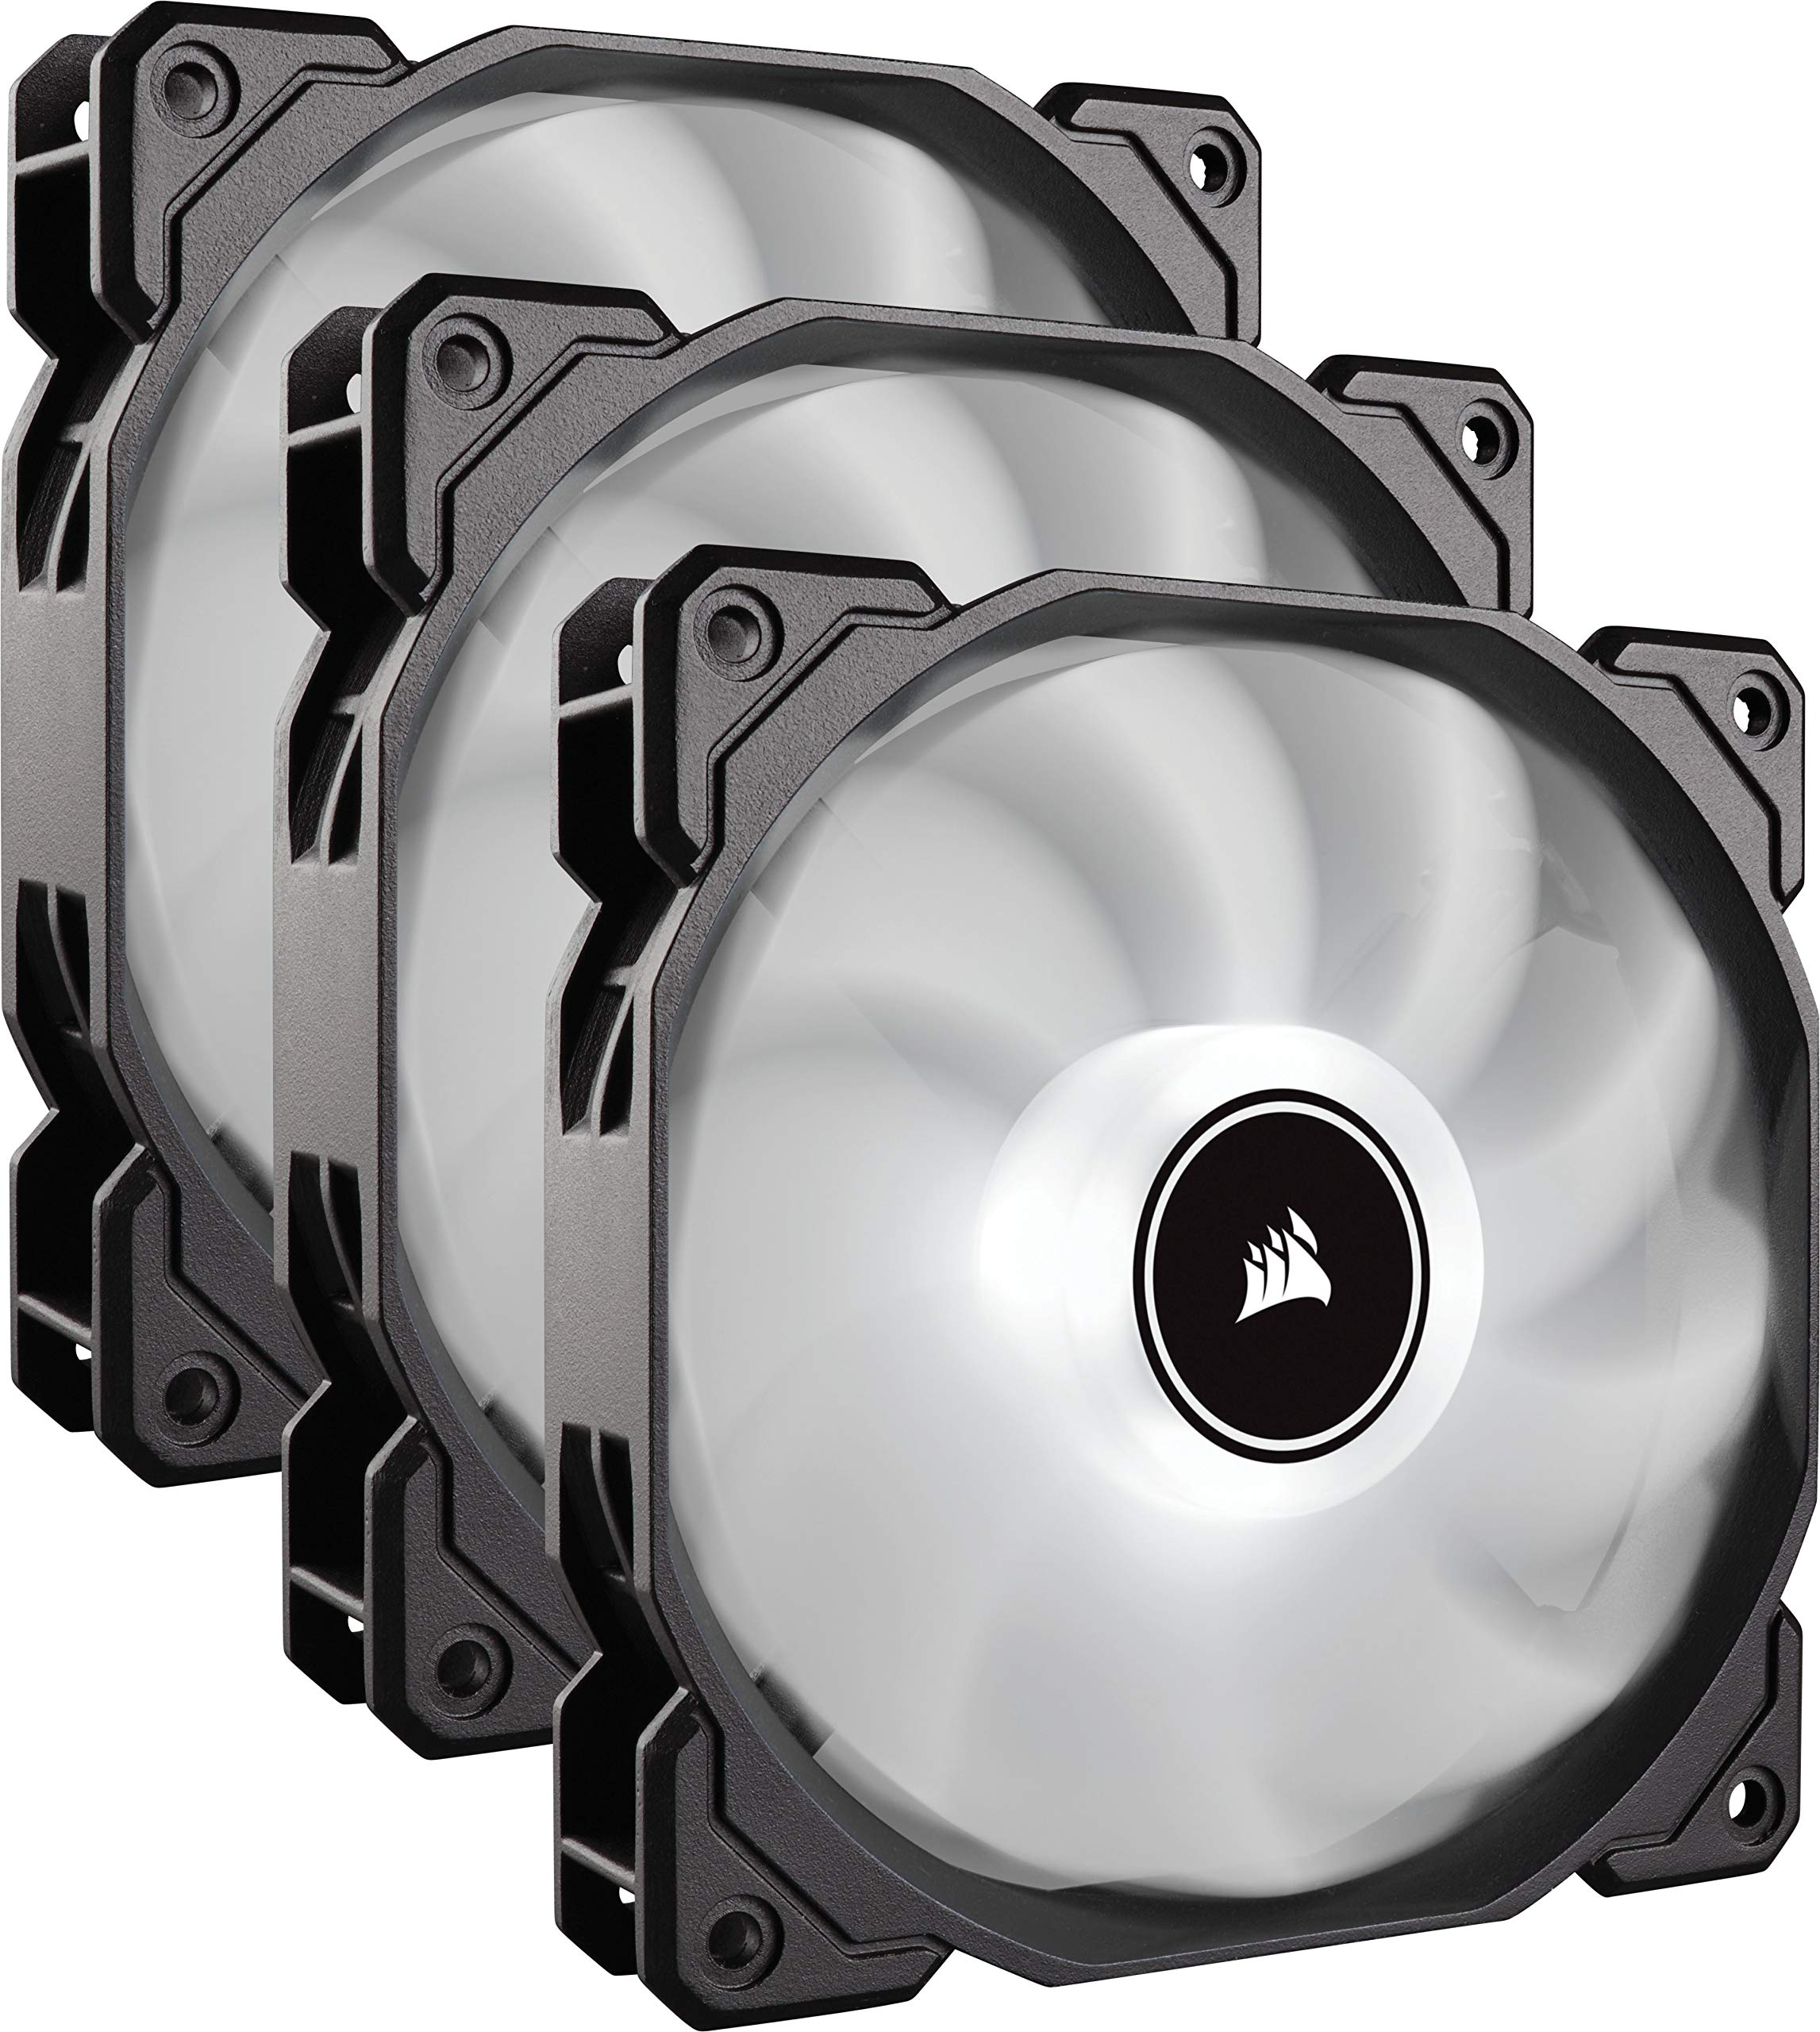 Corsair Af120 Led Low Noise Cooling Fan Triple Pack White...